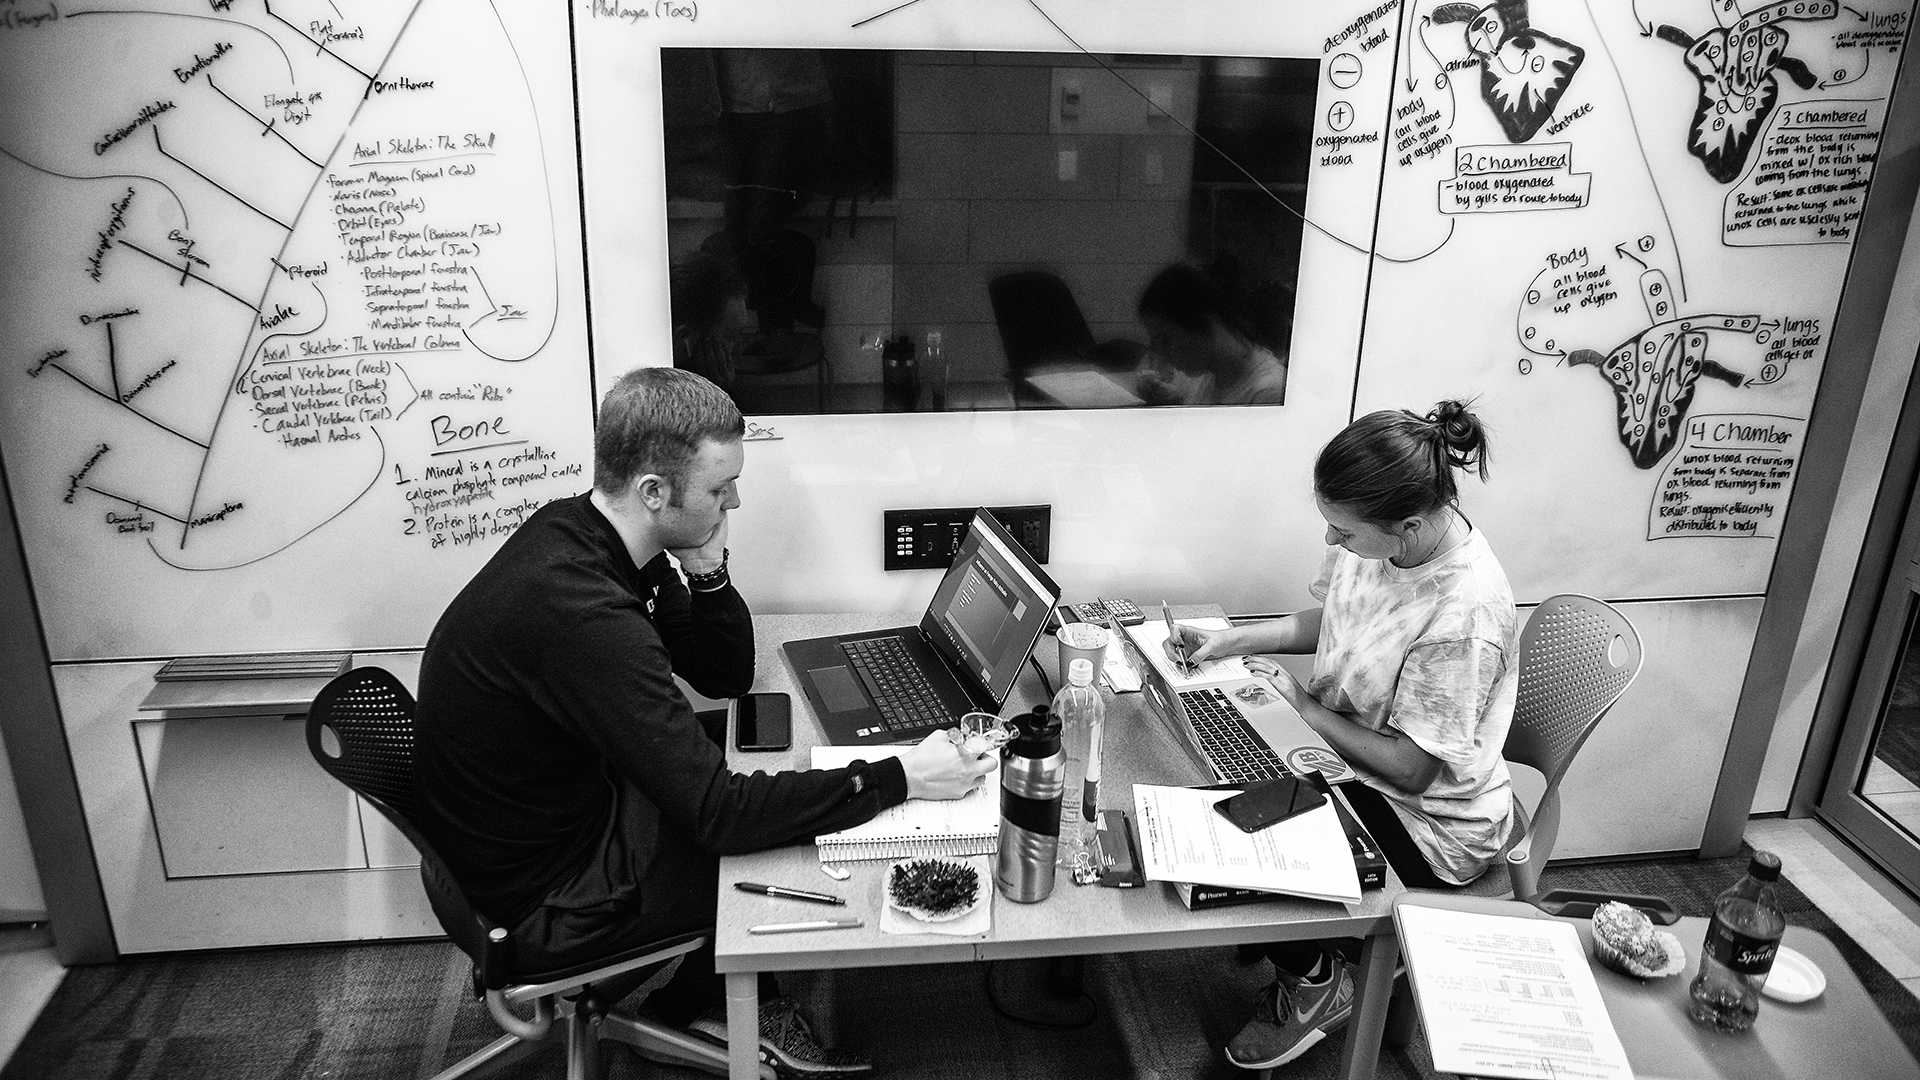 UI students David Broughton and Hannah Sullivan study inside a group room at the Main Library on Sunday, Dec. 10, 2017. With finals week approaching many students are spending time studying at locations such as the library.(Charles Peckman/The Daily Iowan)